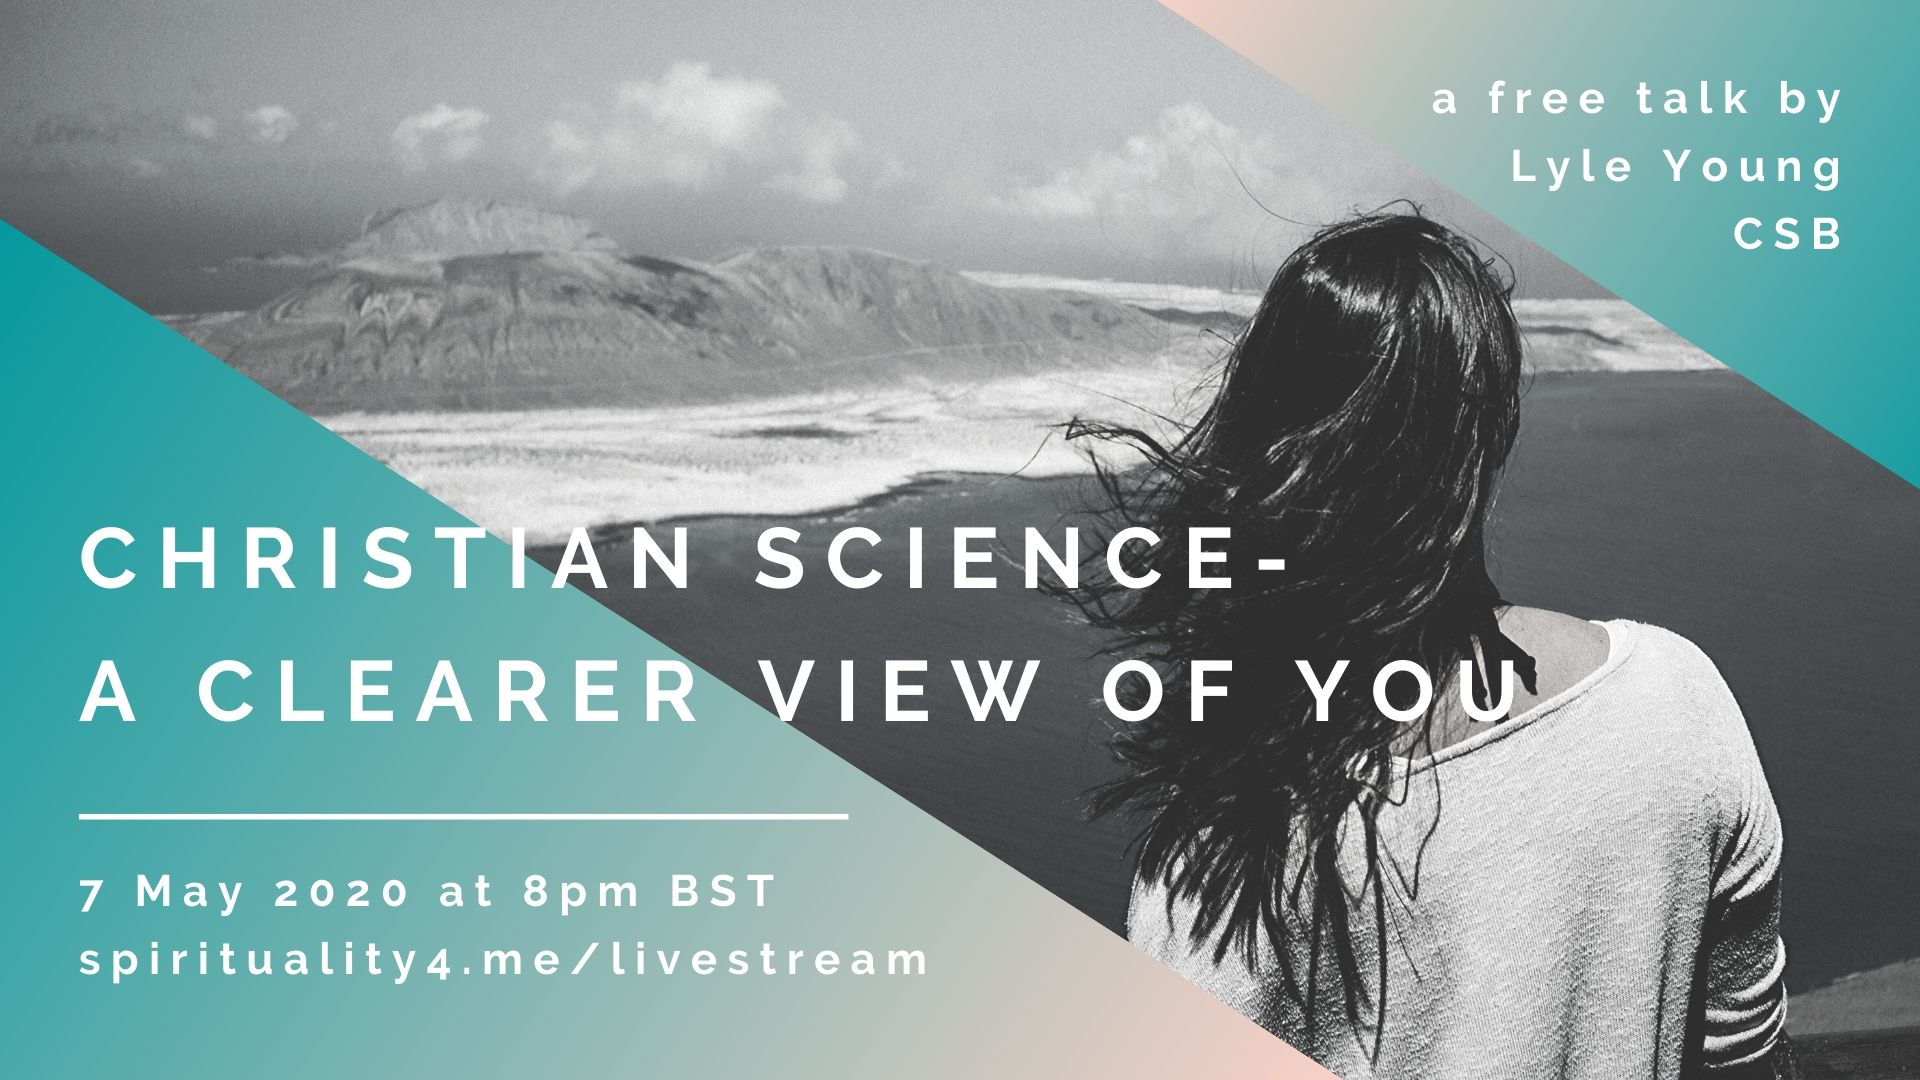 FREE ONLINE TALK: Christian Science- a clearer view of you